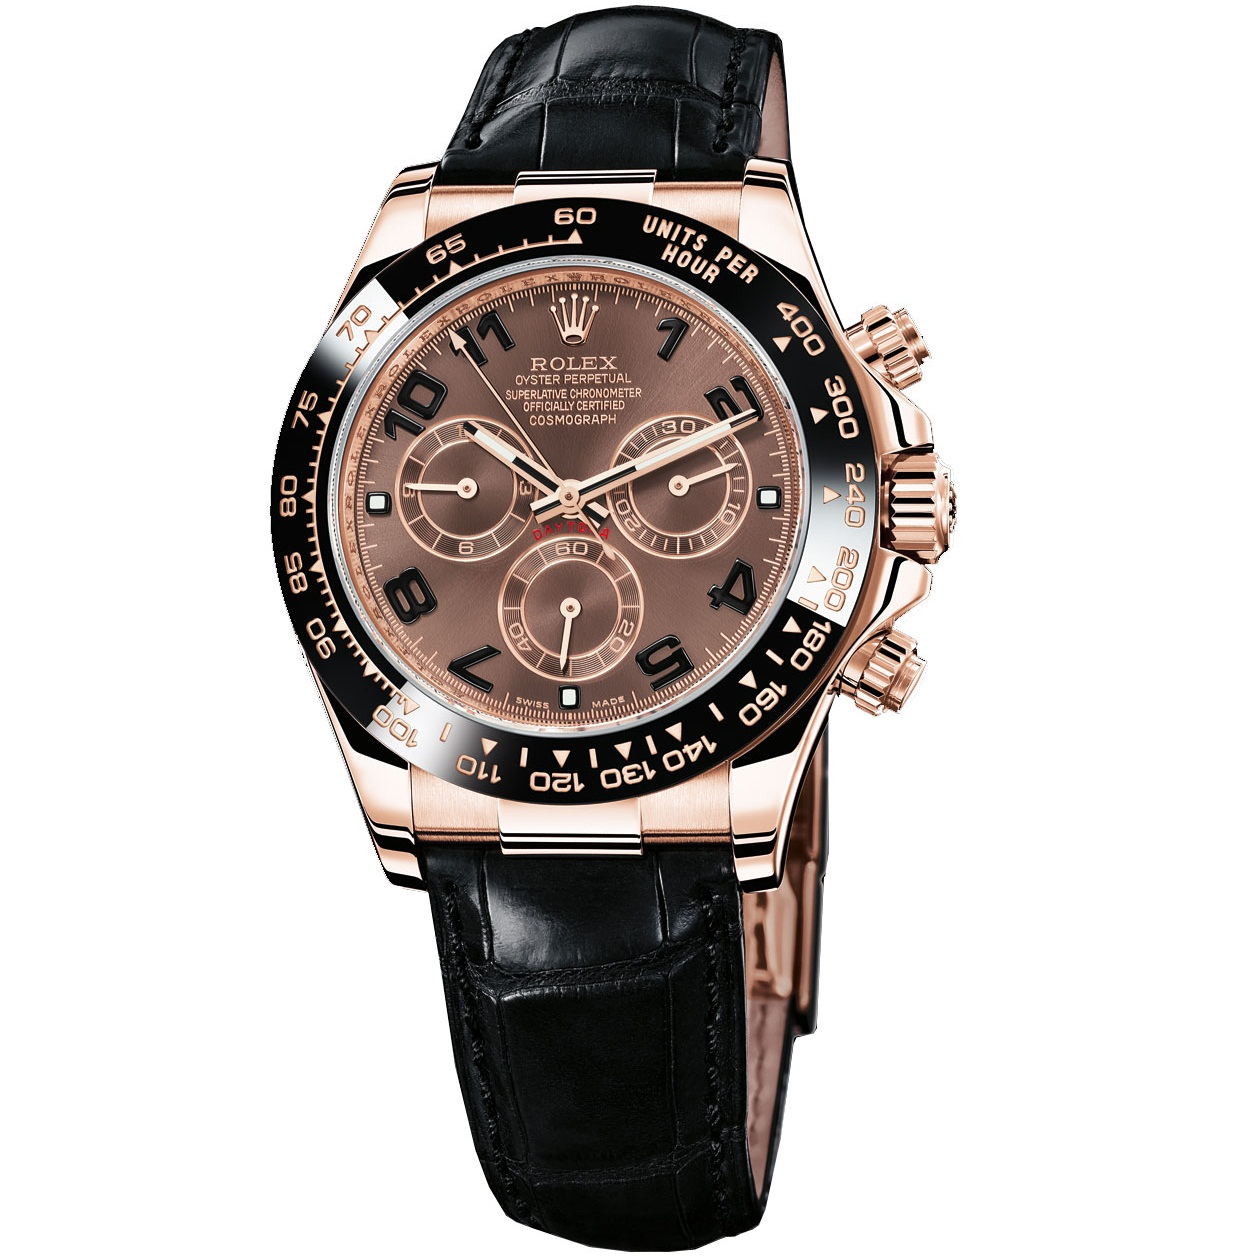 ROLEX OYSTER PERPETUAL SUPERLATIVE CHRONOMETER OFFICIALLY CERTIFIED  COSMOGRAPH DAYTONE WATCH BROWN WITH LEATHER BLACK BELT